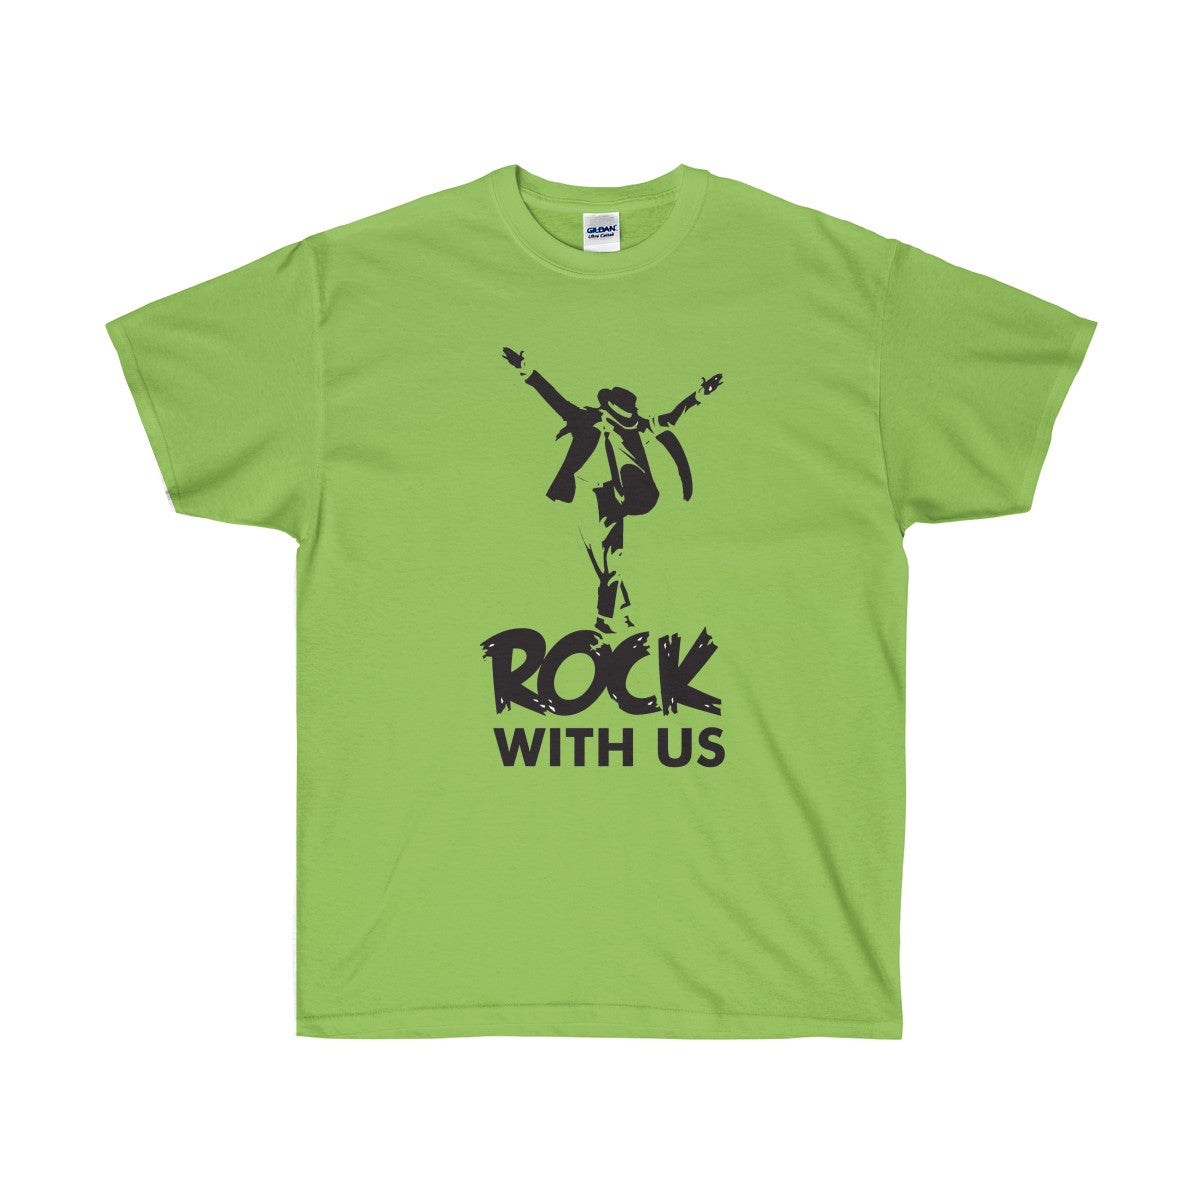 Buy Rock With Us - Unisex Ultra Cotton Tee T-Shirt - Xshopz